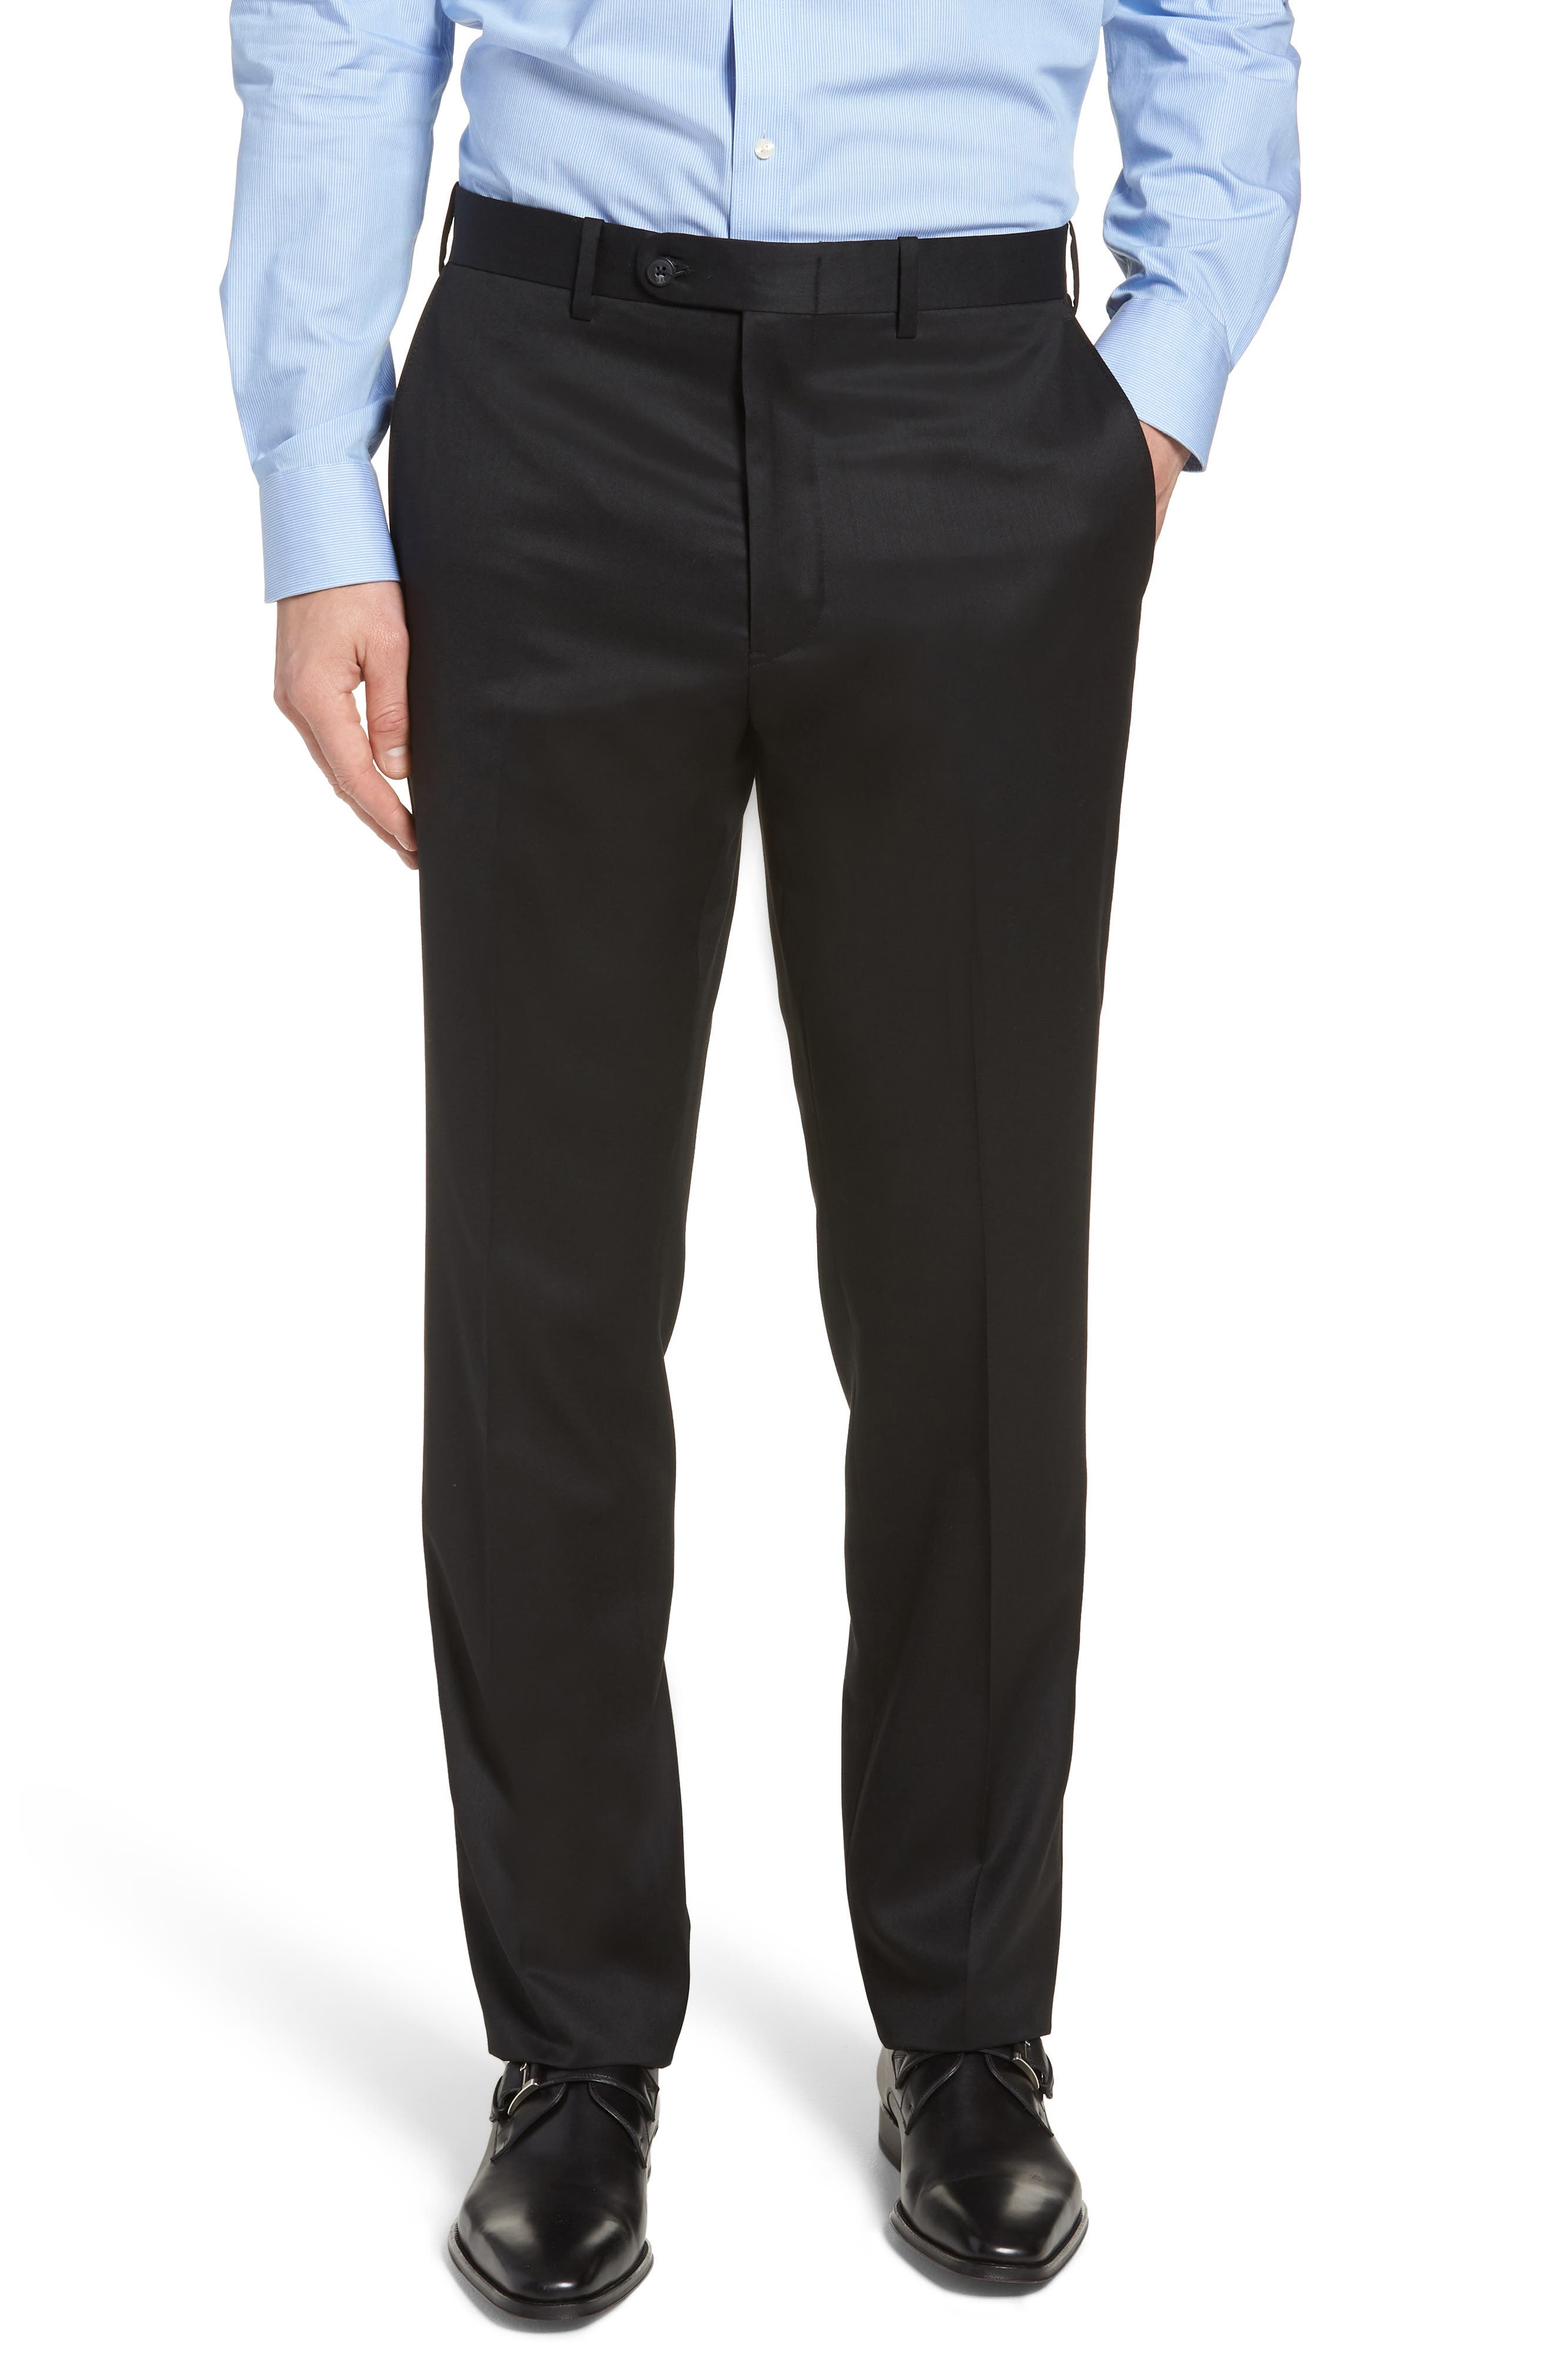 Torino Traditional Fit Flat Front Solid Trousers,                             Main thumbnail 1, color,                             BLACK